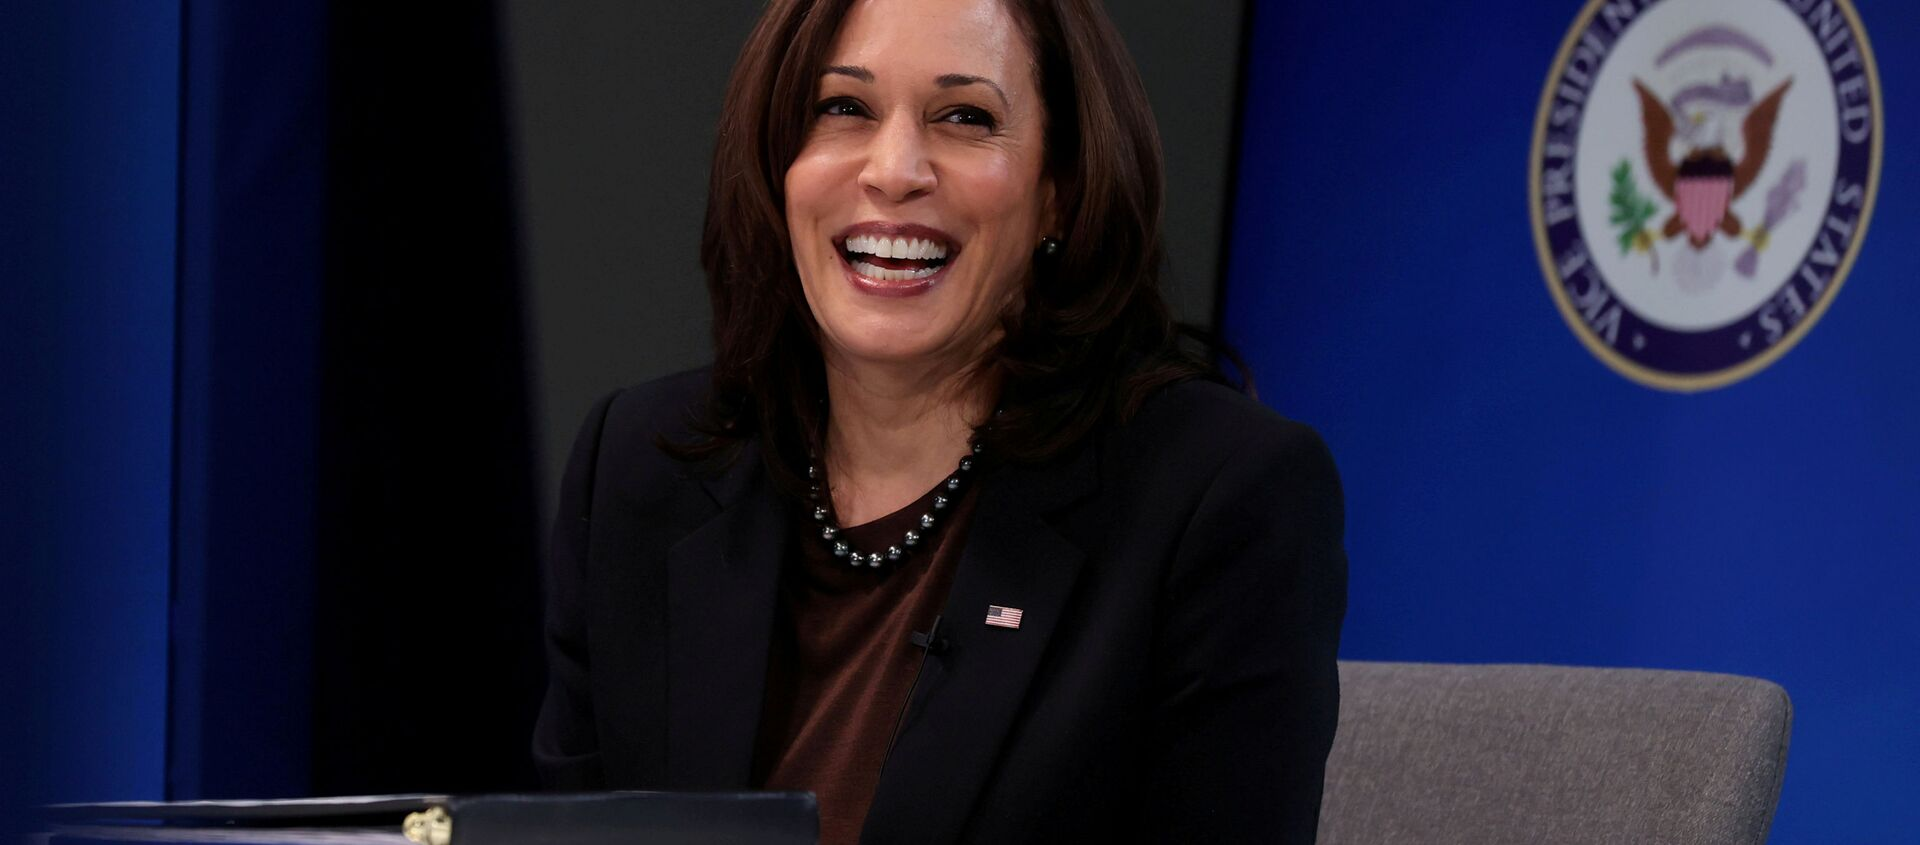 U.S. Vice President Kamala Harris smiles after delivering a keynote address to the House Democratic Caucus virtually on camera from the Eisenhower Executive Office Building at the White House in Washington, U.S. March 2, 2021 - Sputnik International, 1920, 26.06.2021